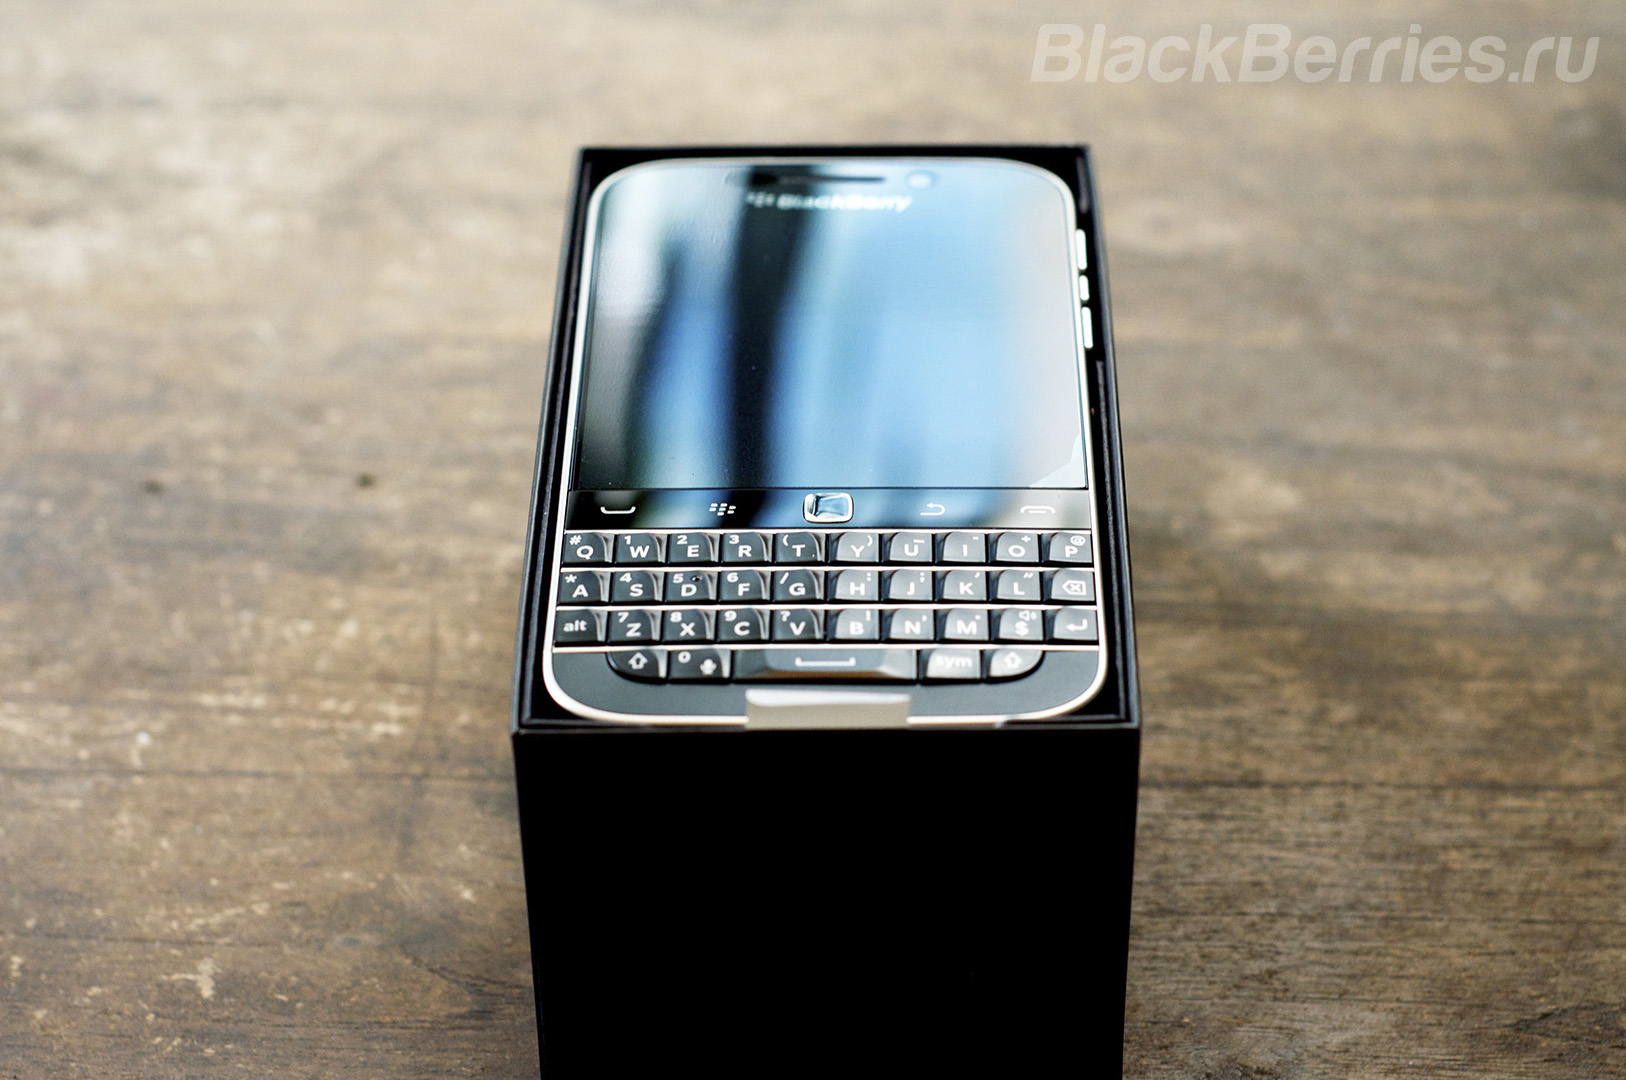 BlackBerry-Classic-2-Review-16